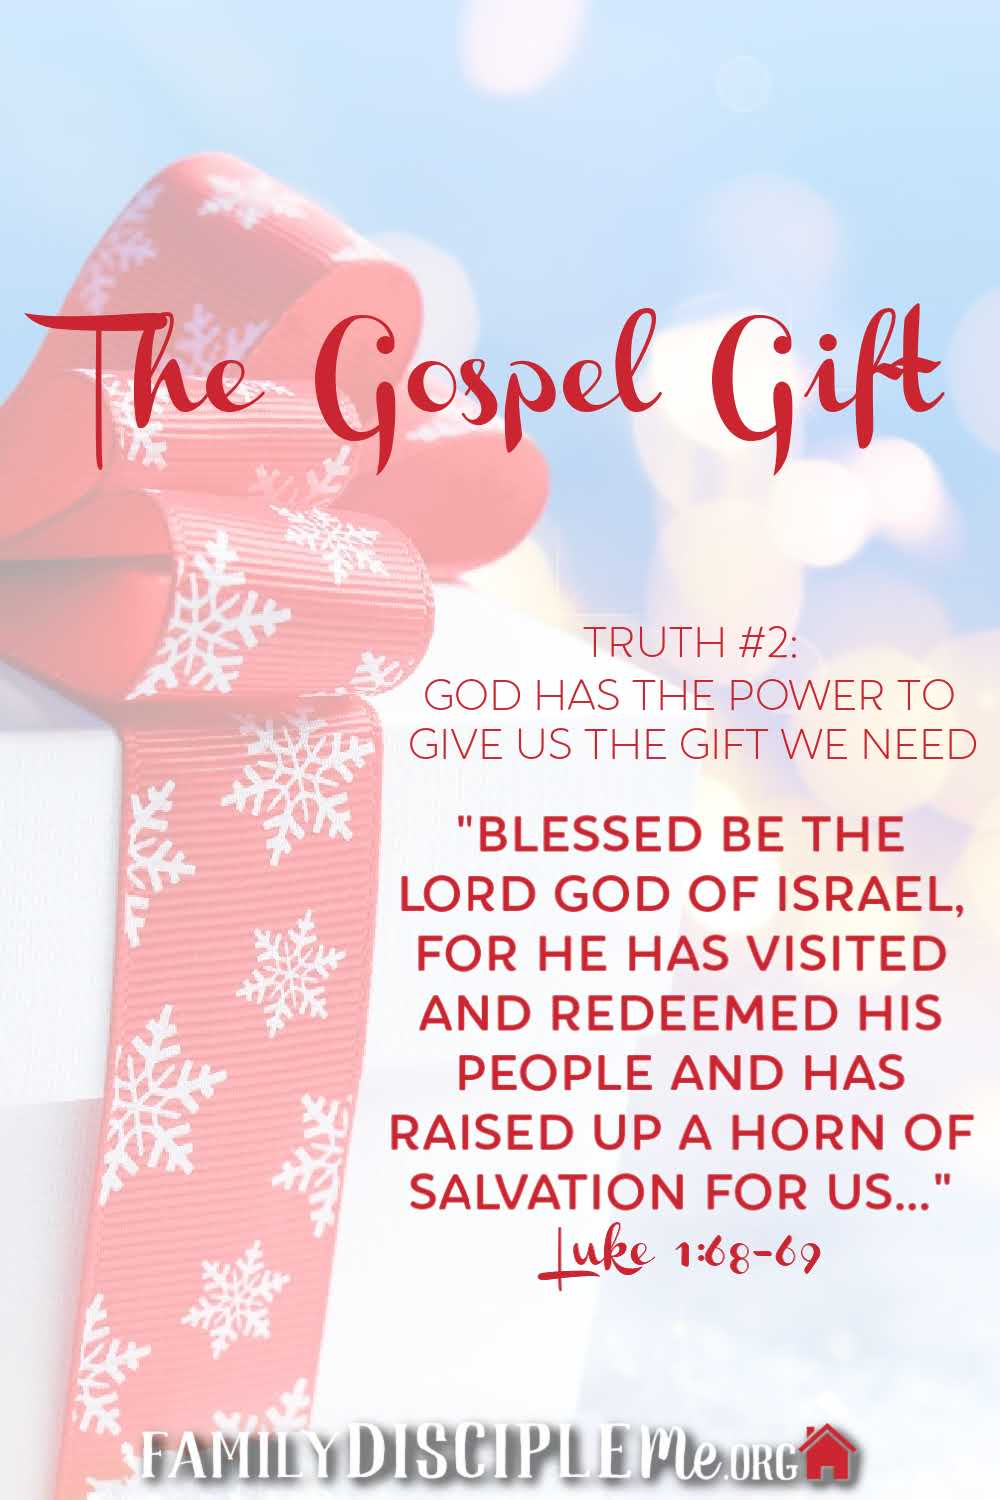 God Has the Power to Give Us the Gift We Need